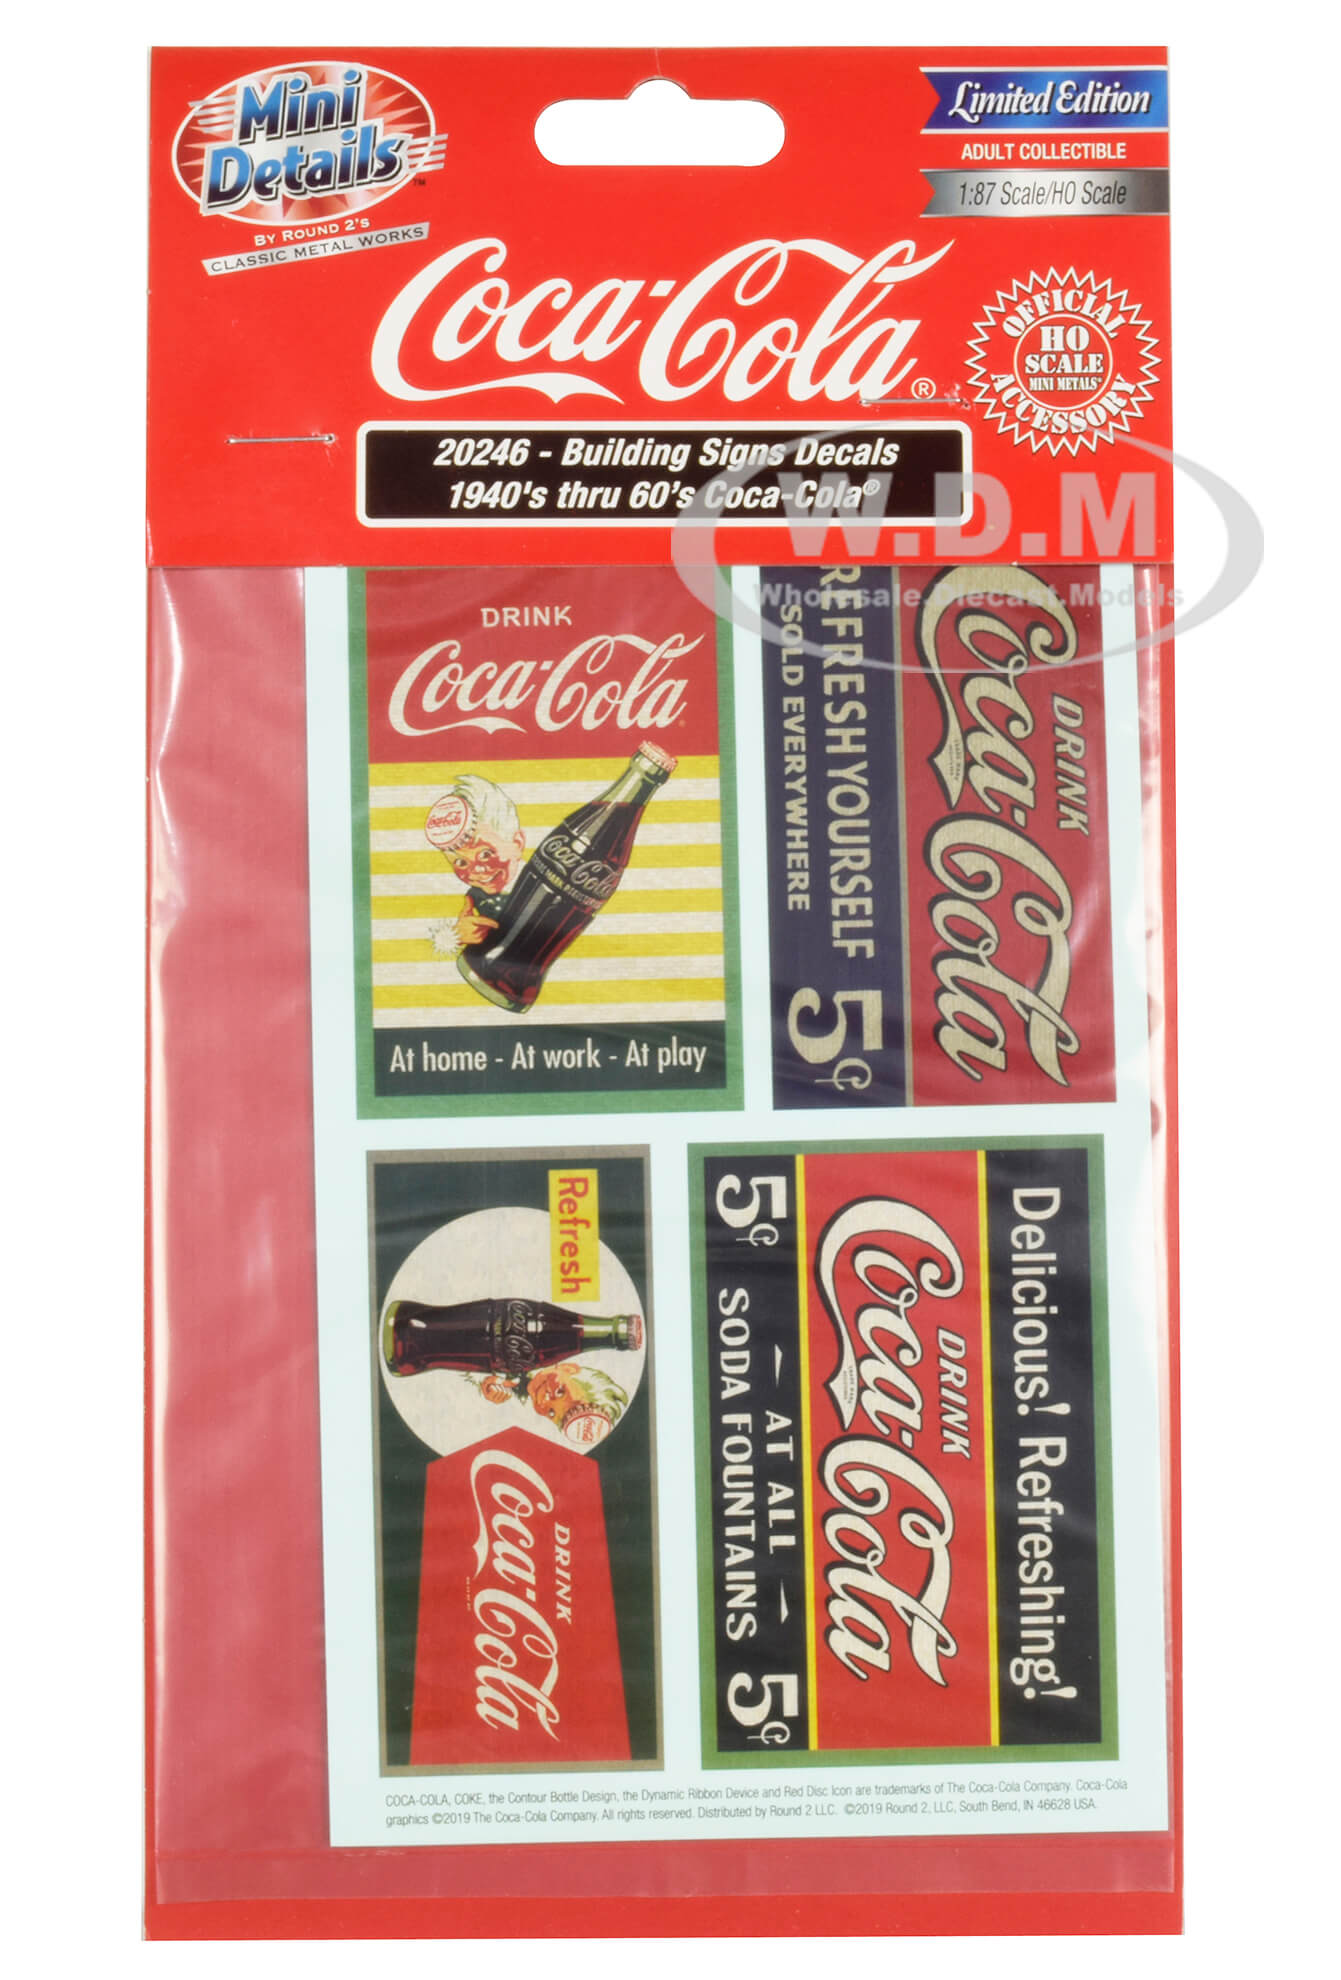 1940s Thru 60s Coca-Cola Building Signs Decals for 1/87 (HO) Scale Models by Classic Metal Works